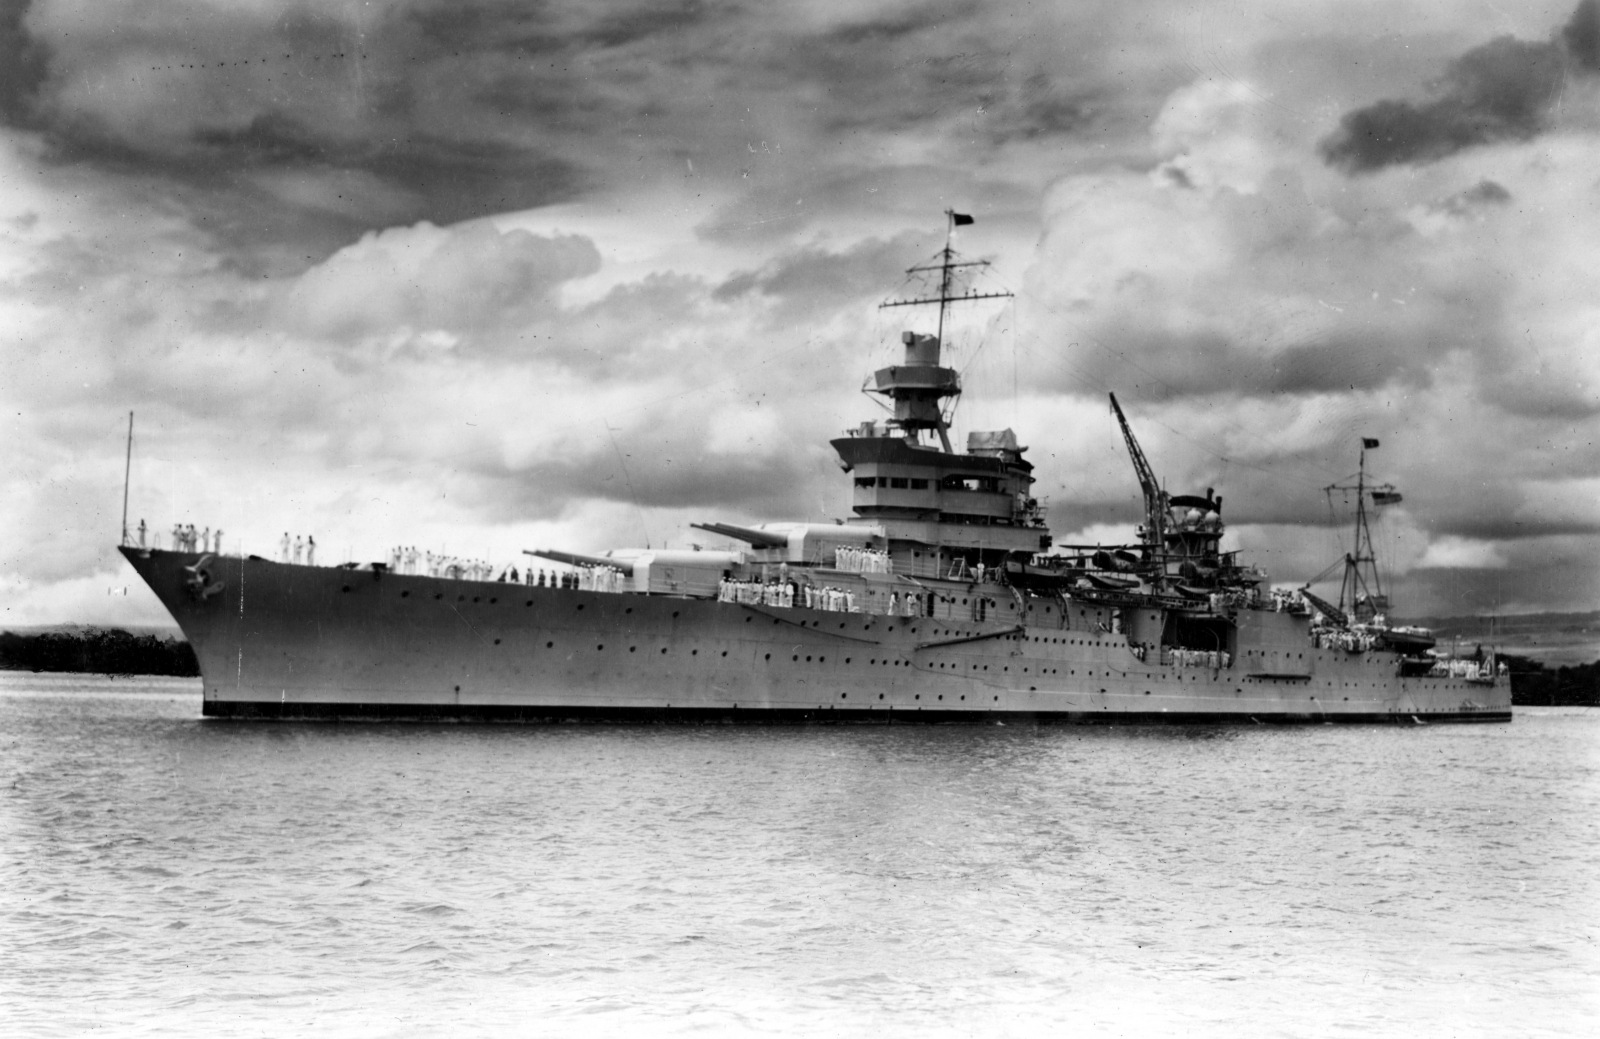 Wreckage of USS Indianapolis discovered